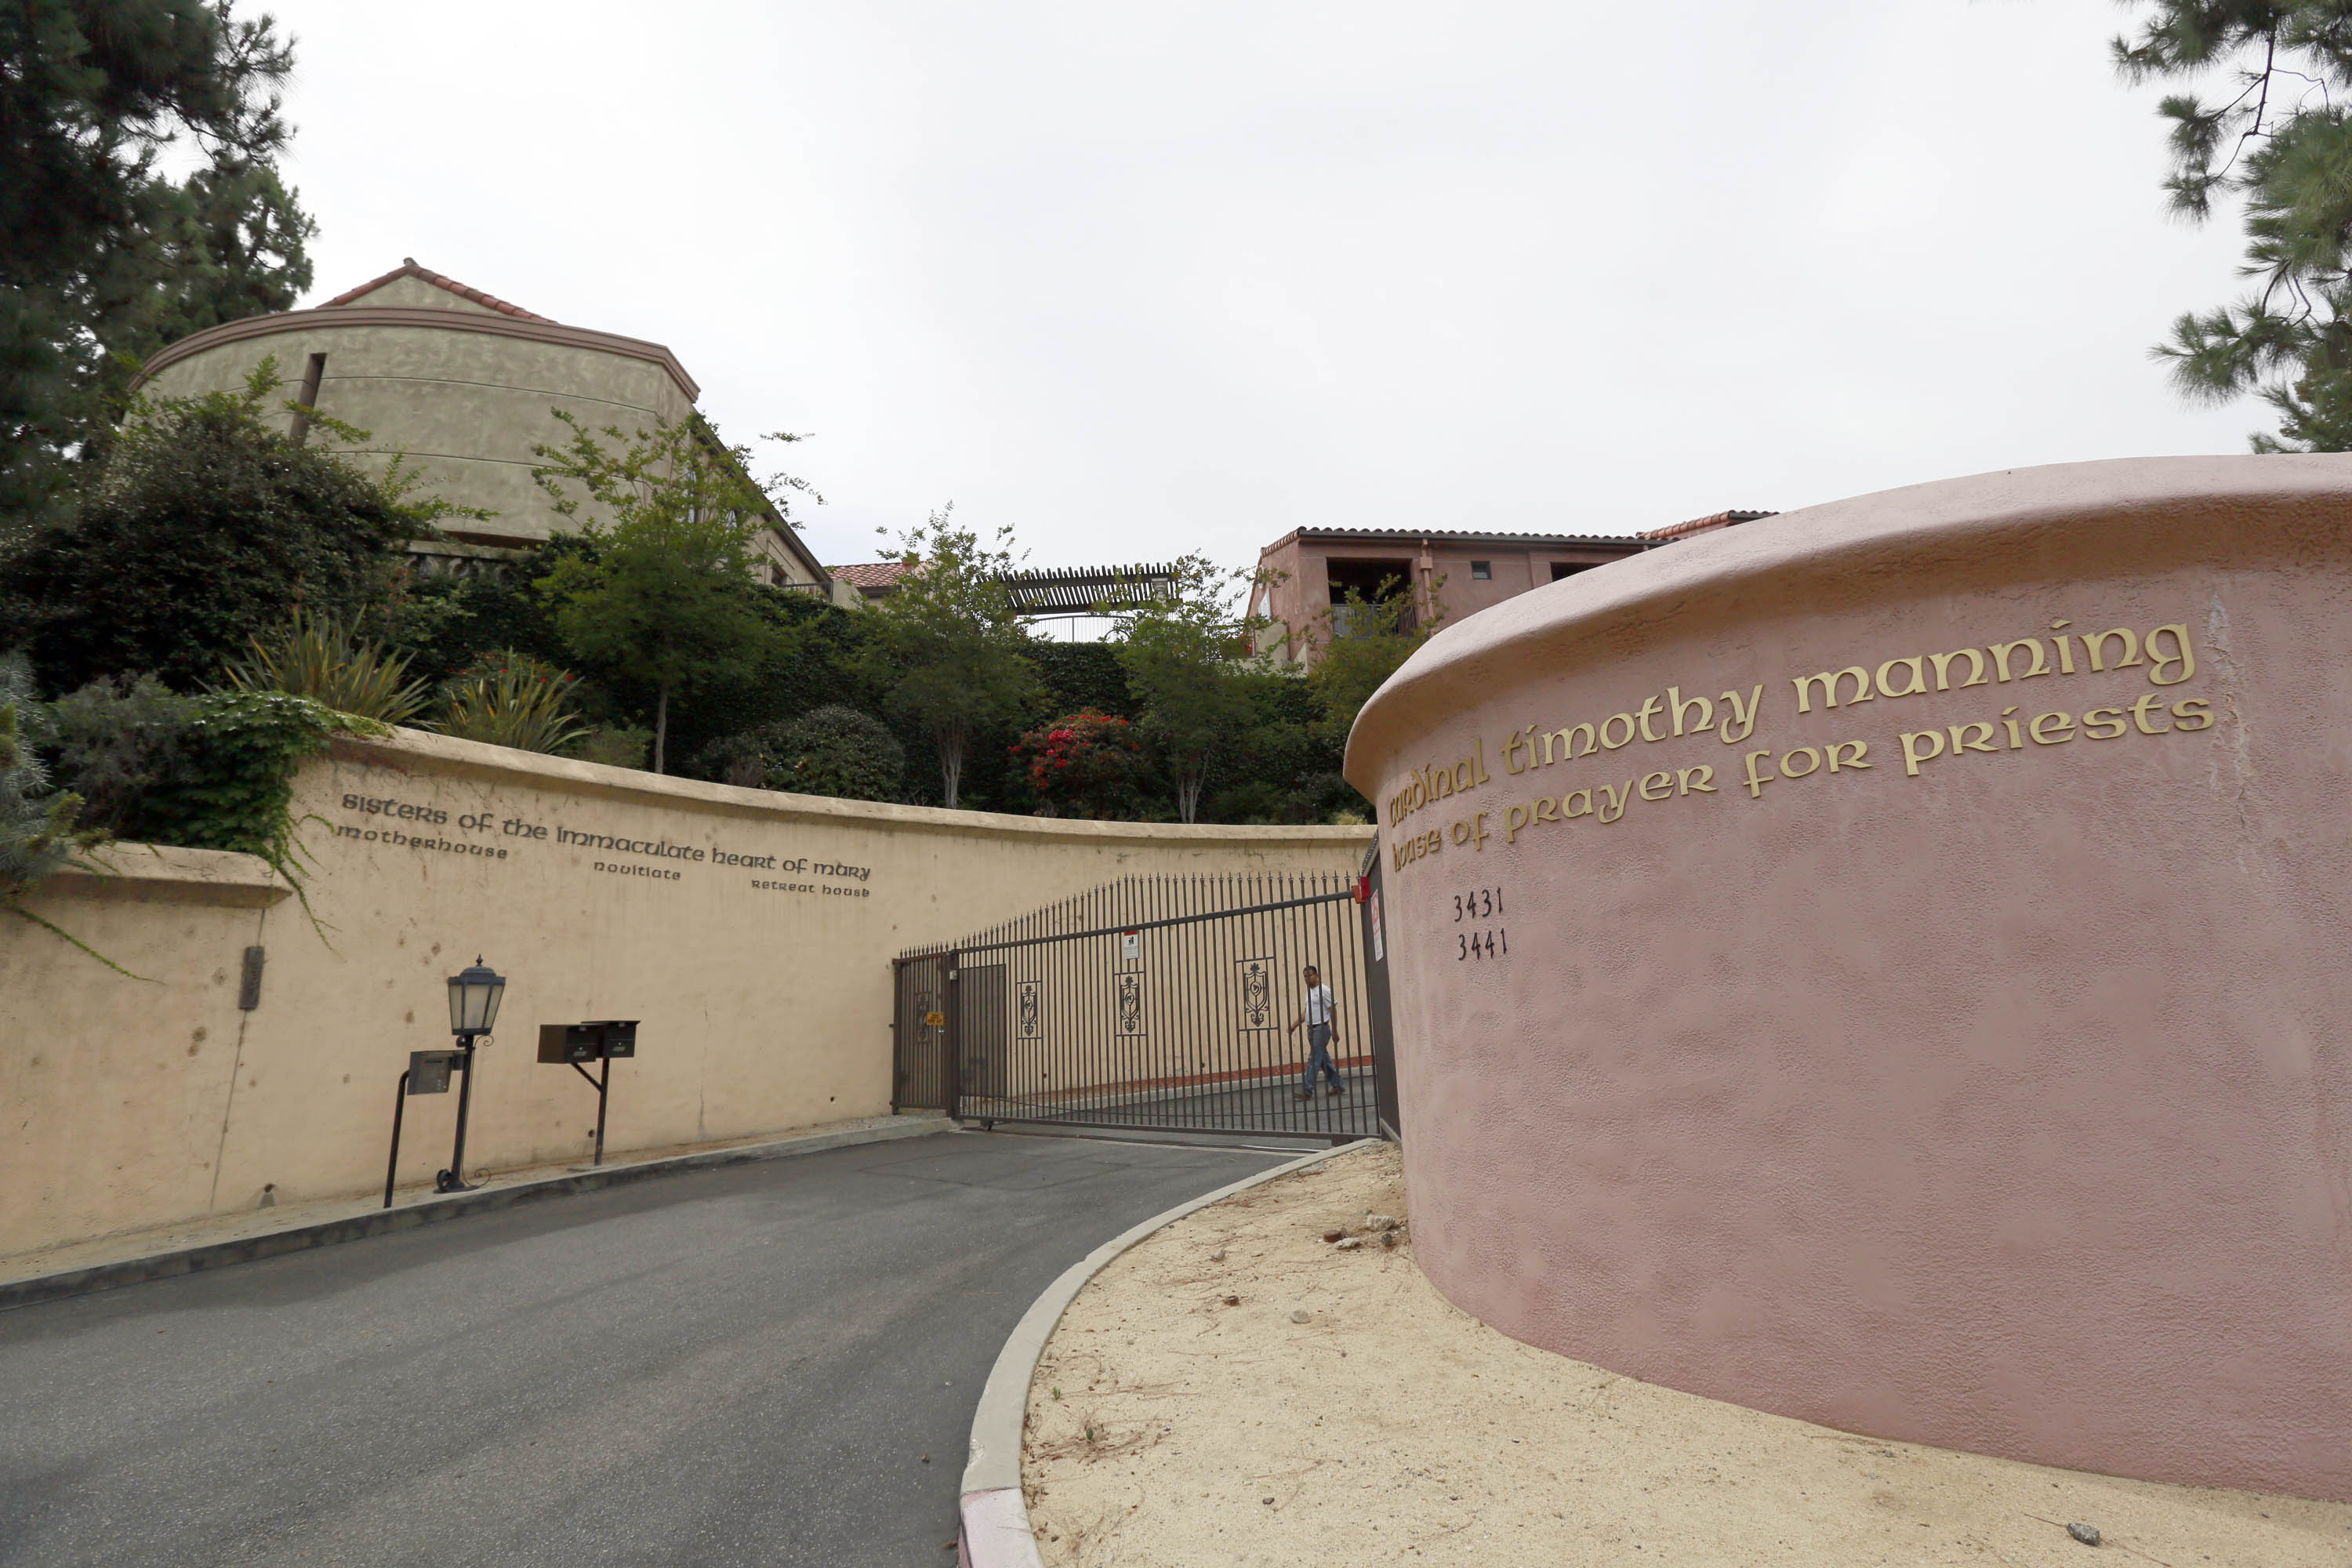 The Sisters of the Immaculate Heart of Mary property in the Los Feliz area of Los Angeles. Singer Katy Perry sought to purchase the property.